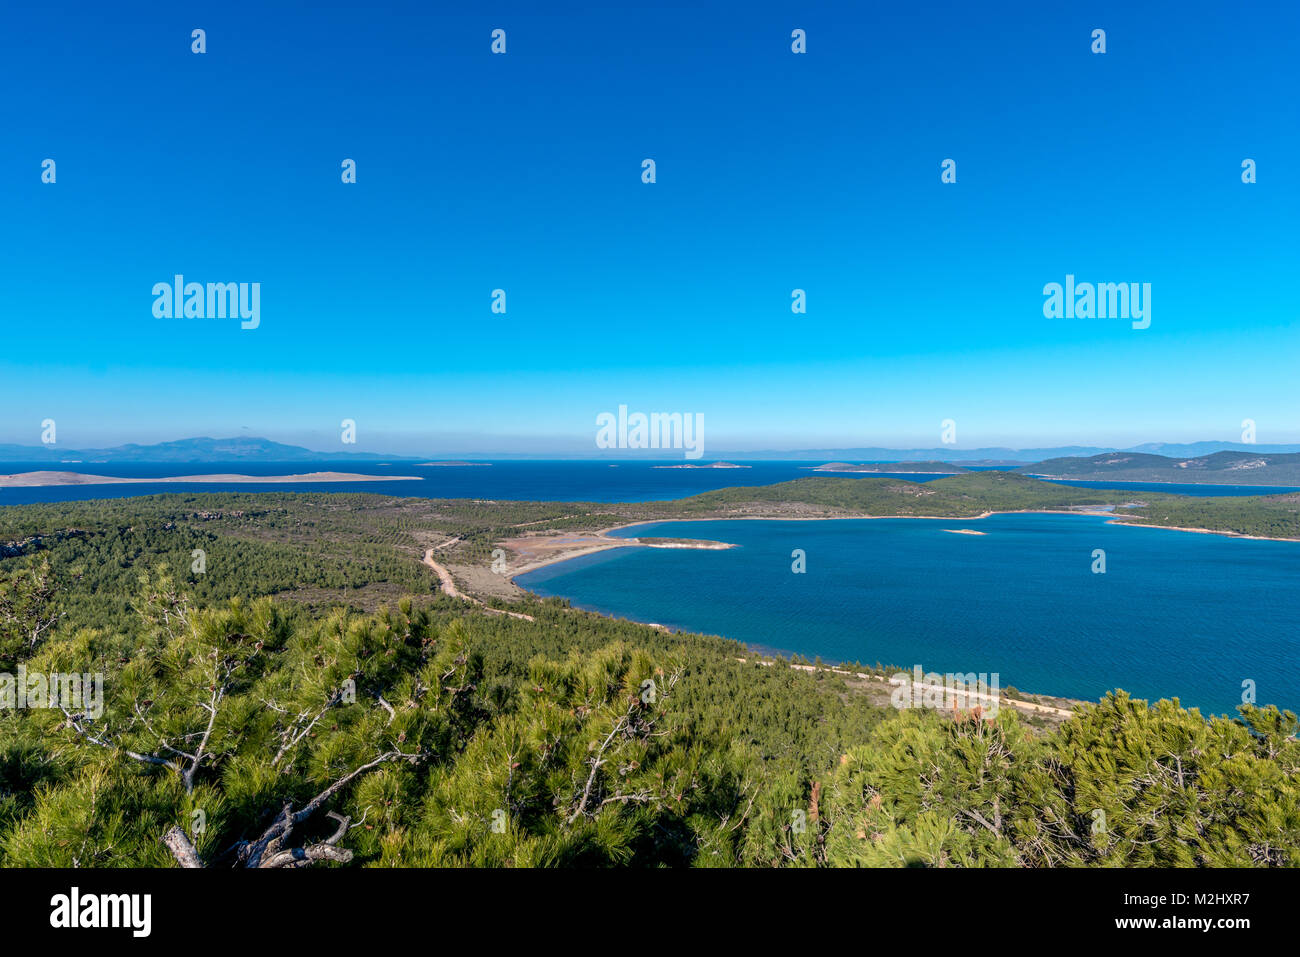 View from famous Devil's feast (seytan sofrasi) height at Ayvalik, Turkey - Stock Image